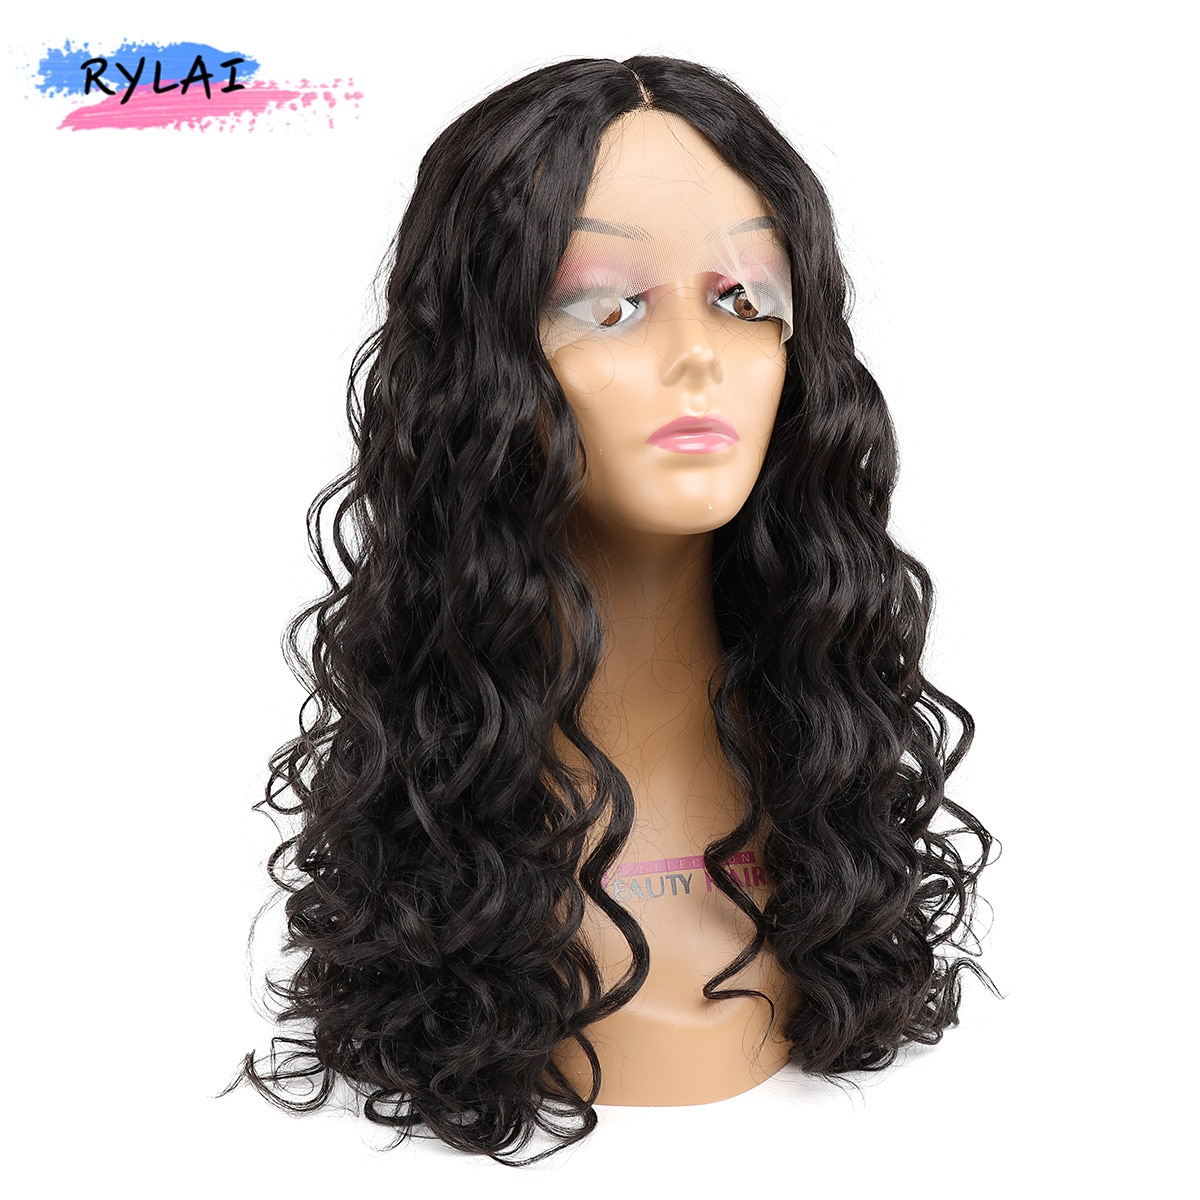 Isabel Natural Wave Hair Wigs Type T Lace With Adjustable Strap Synthetic Curly Heat Resistant Fiber 22Inch Off Black Daliy Use